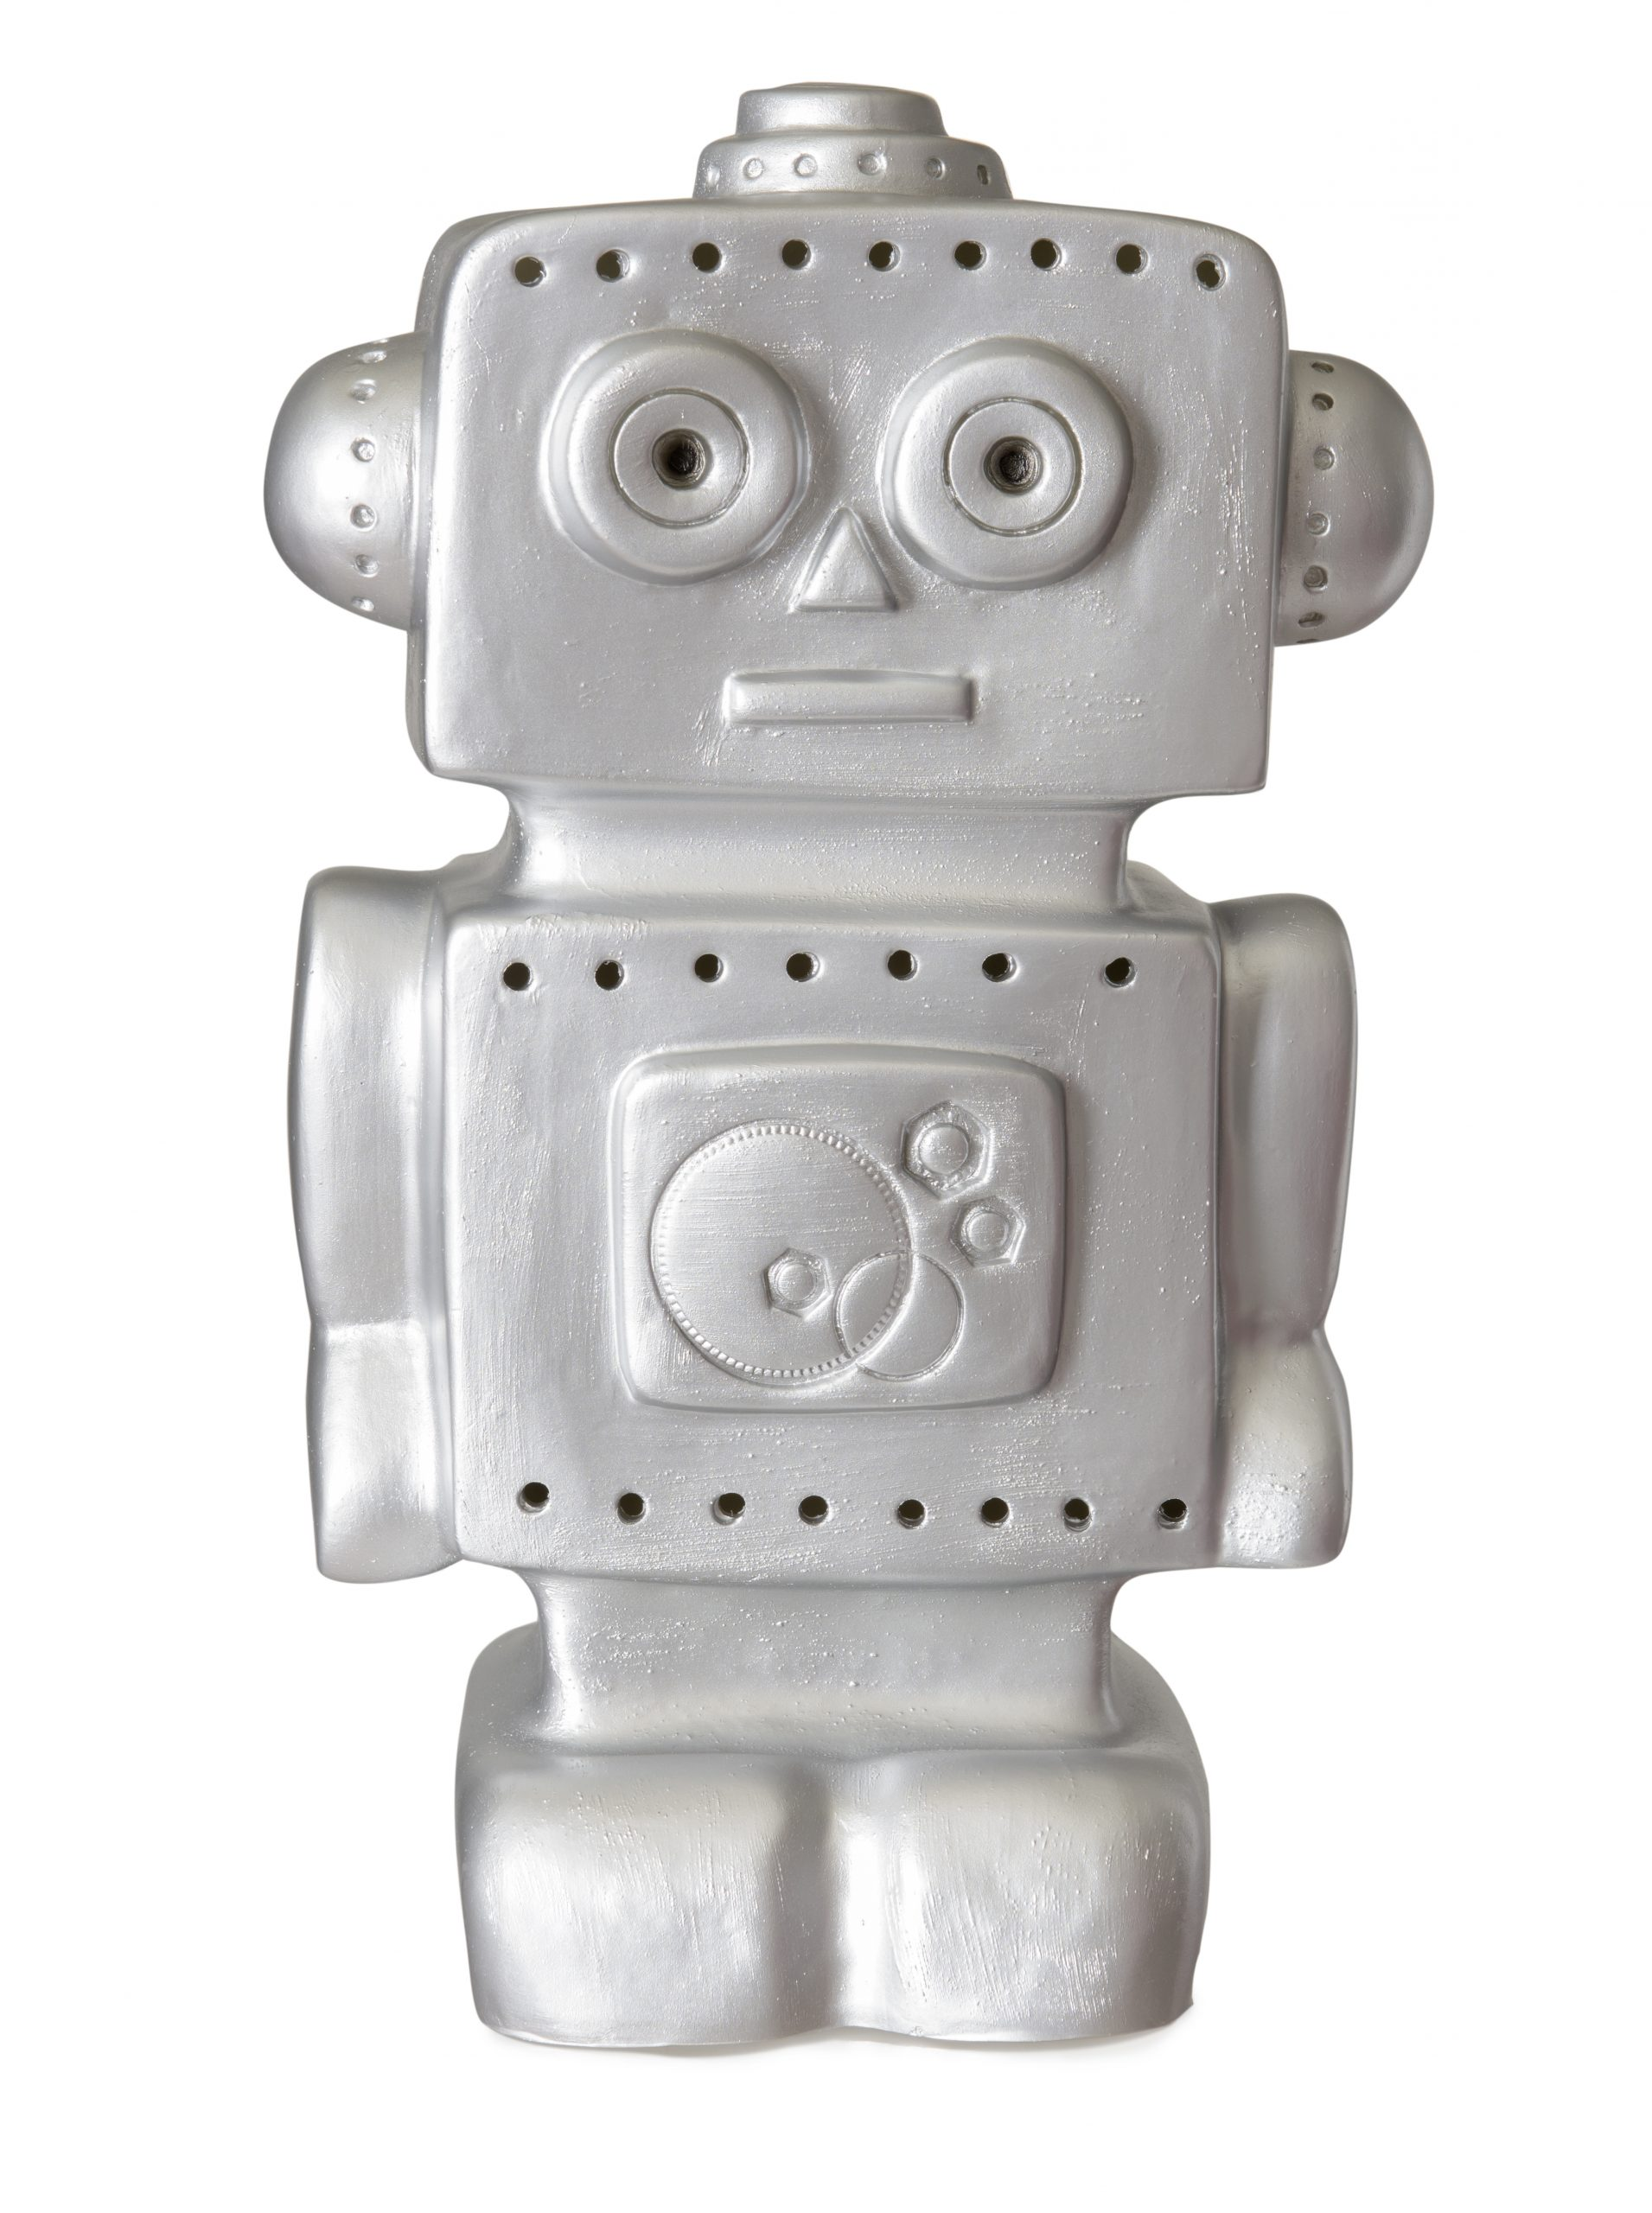 NEW LAMP ROBOT SILVER AVAILABLE IN MAY 15